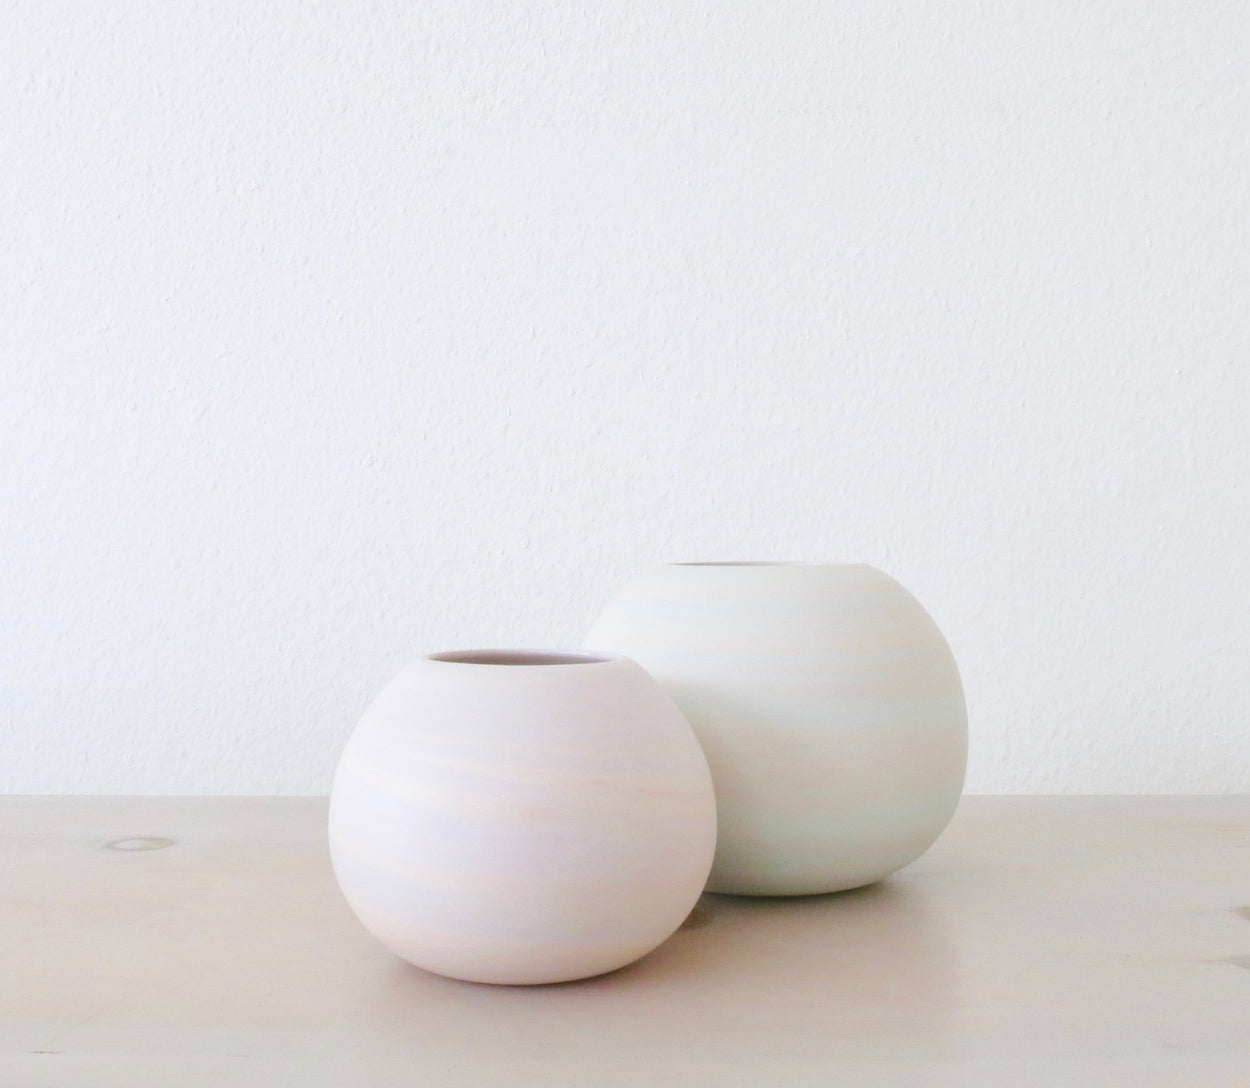 PAIR OF MARBLE ORB VASES